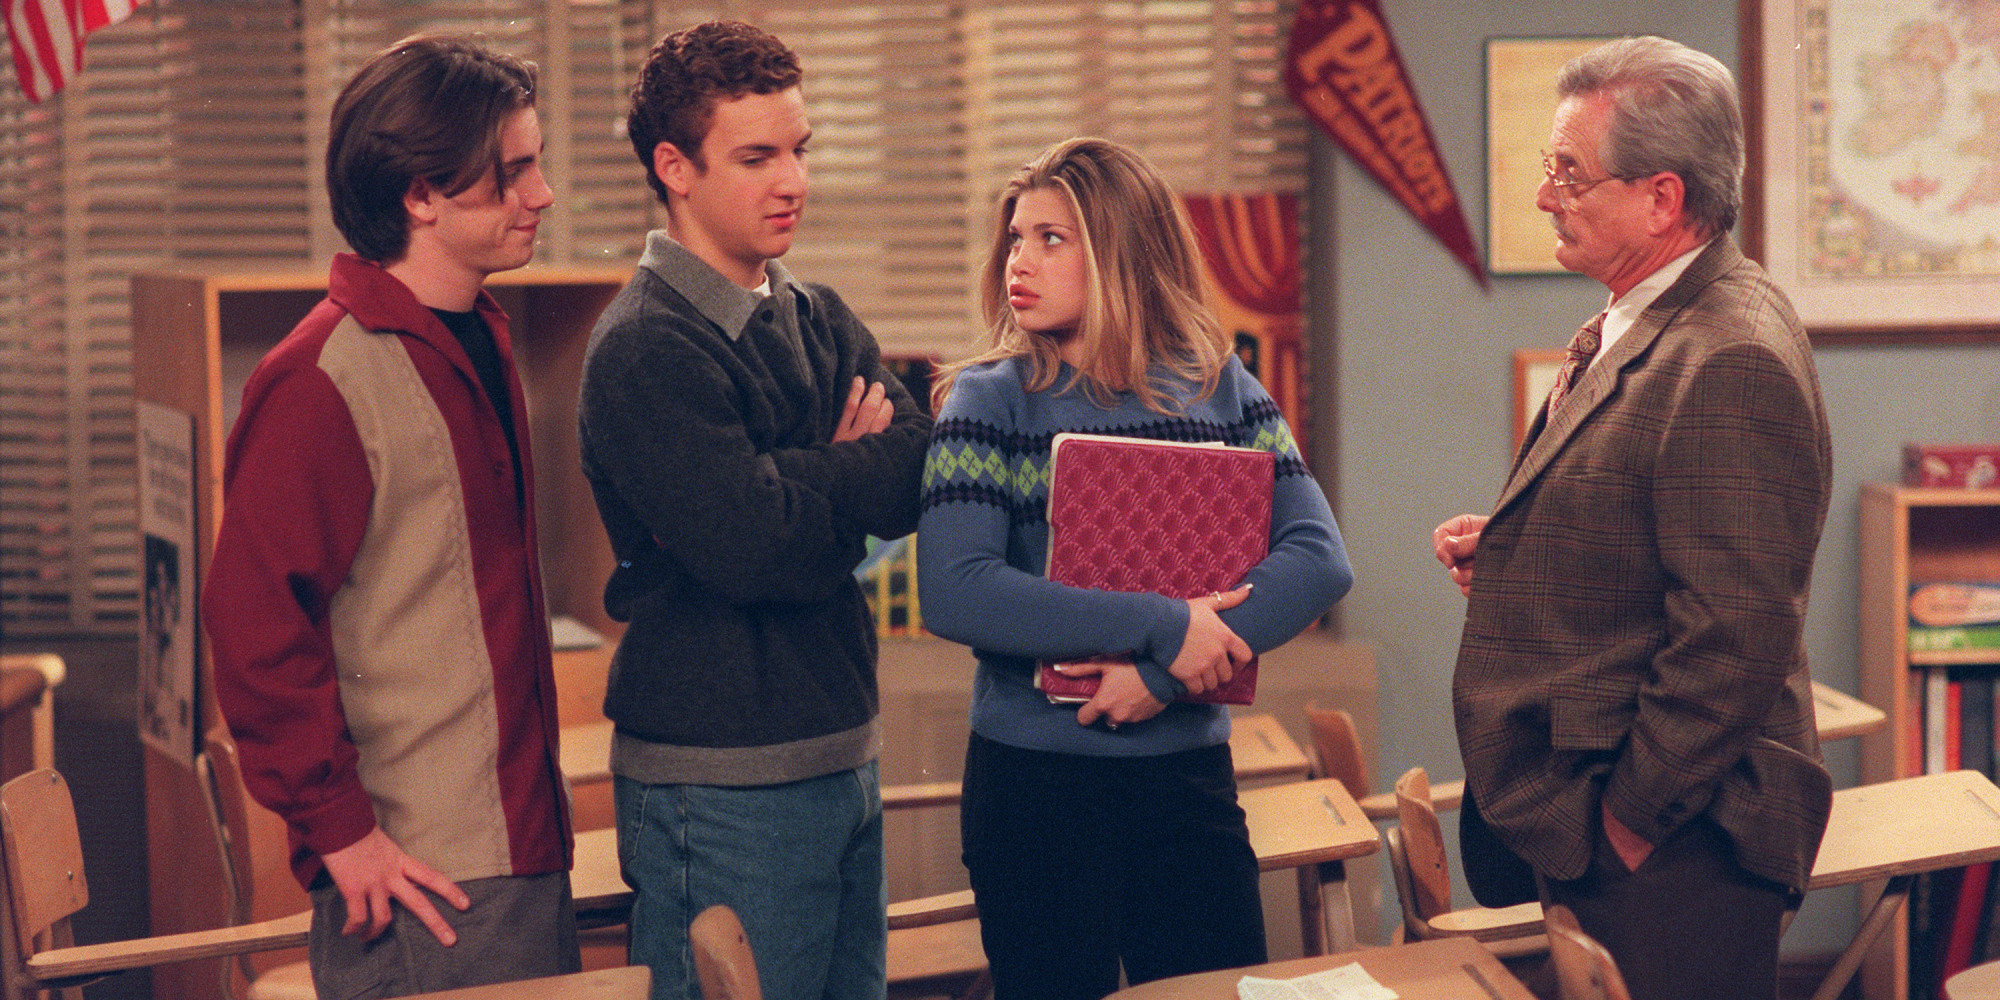 girl meets world sequel series In fall 1993, a coming-of-age comedy called boy meets world premiered on abc's tgif friday night lineup 21 years later, its sequel series, girl meets world, is debuting on the disney channel with many of the original cast members reprising their roles for a new generation.